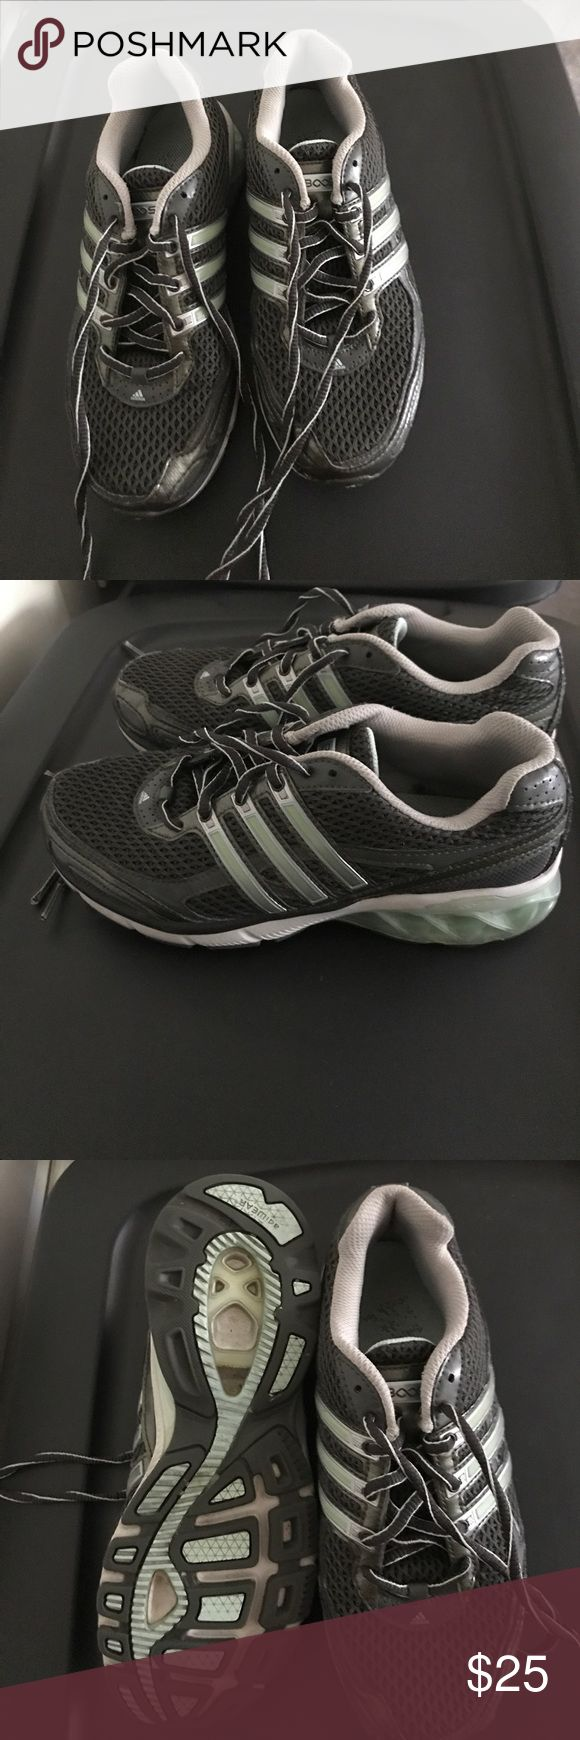 Adidas boost shoes Super comfy shoes, great for any workout Adidas Shoes Athletic Shoes